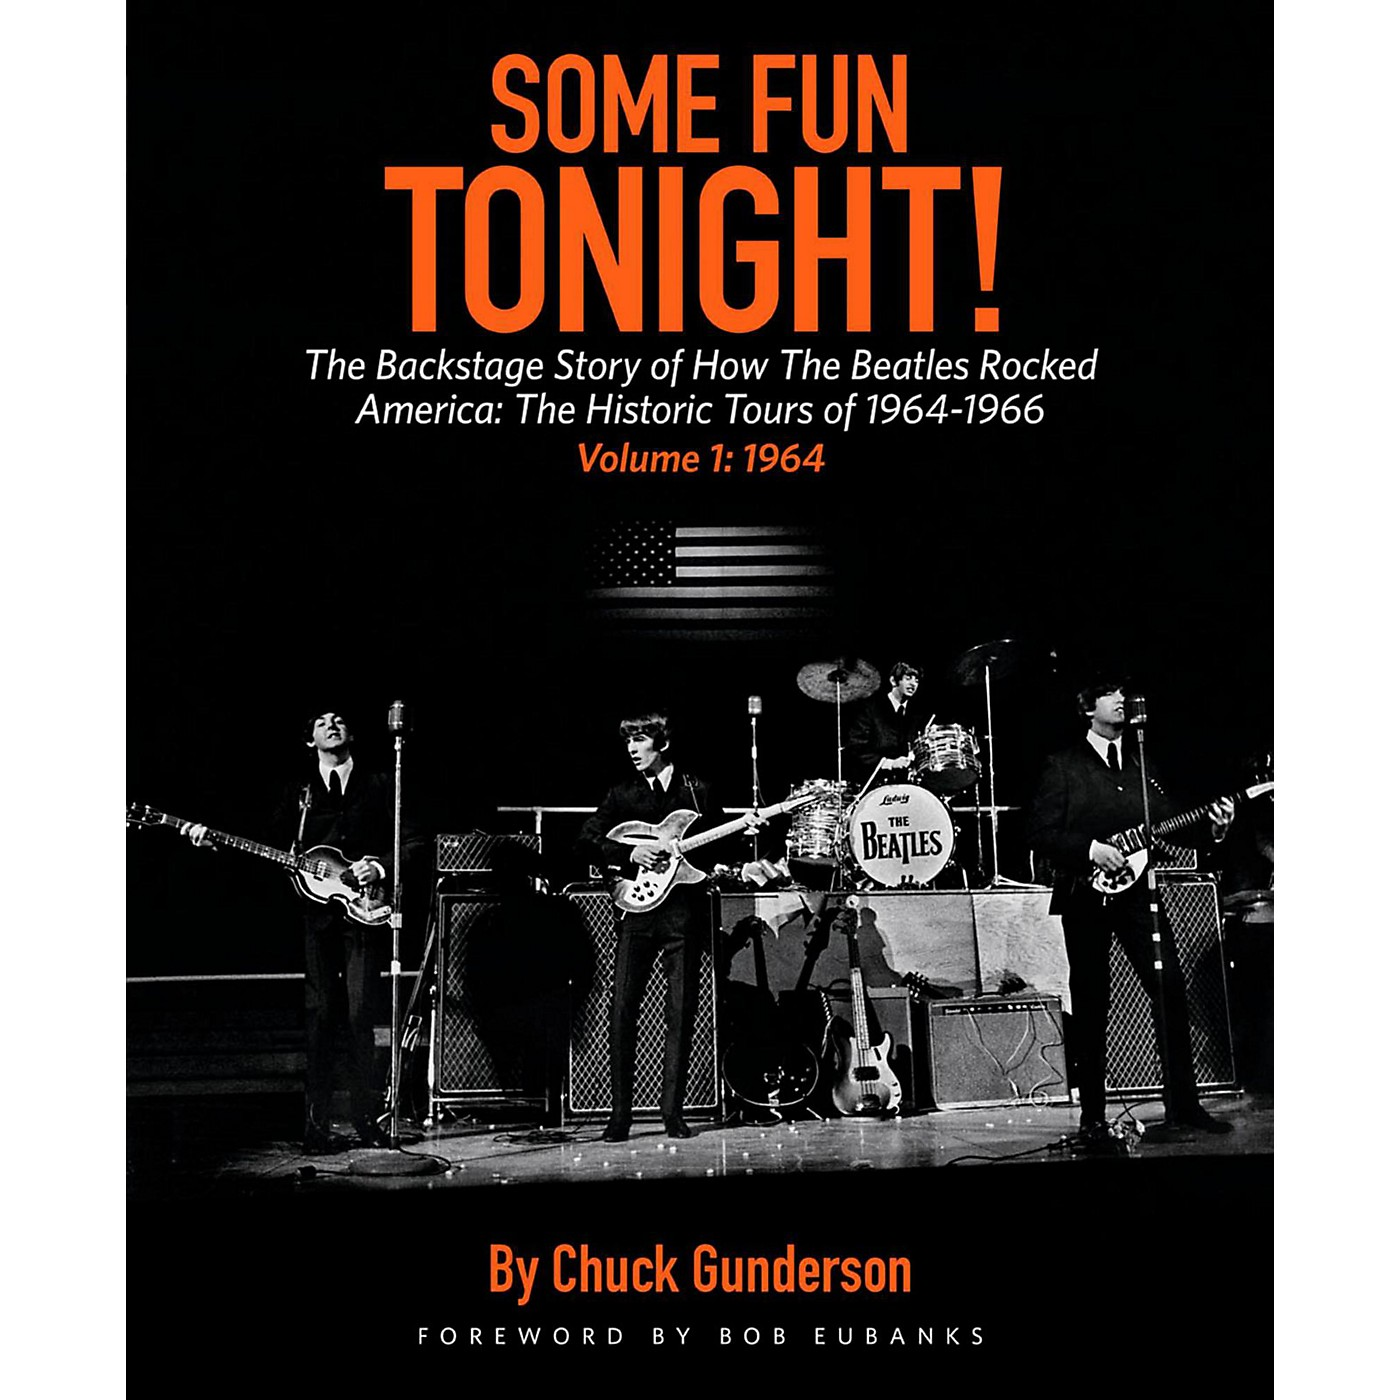 Backbeat Books Some Fun Tonight Vol 1! The Backstage Story of How the Beatles Rocked America '64 - '66 thumbnail